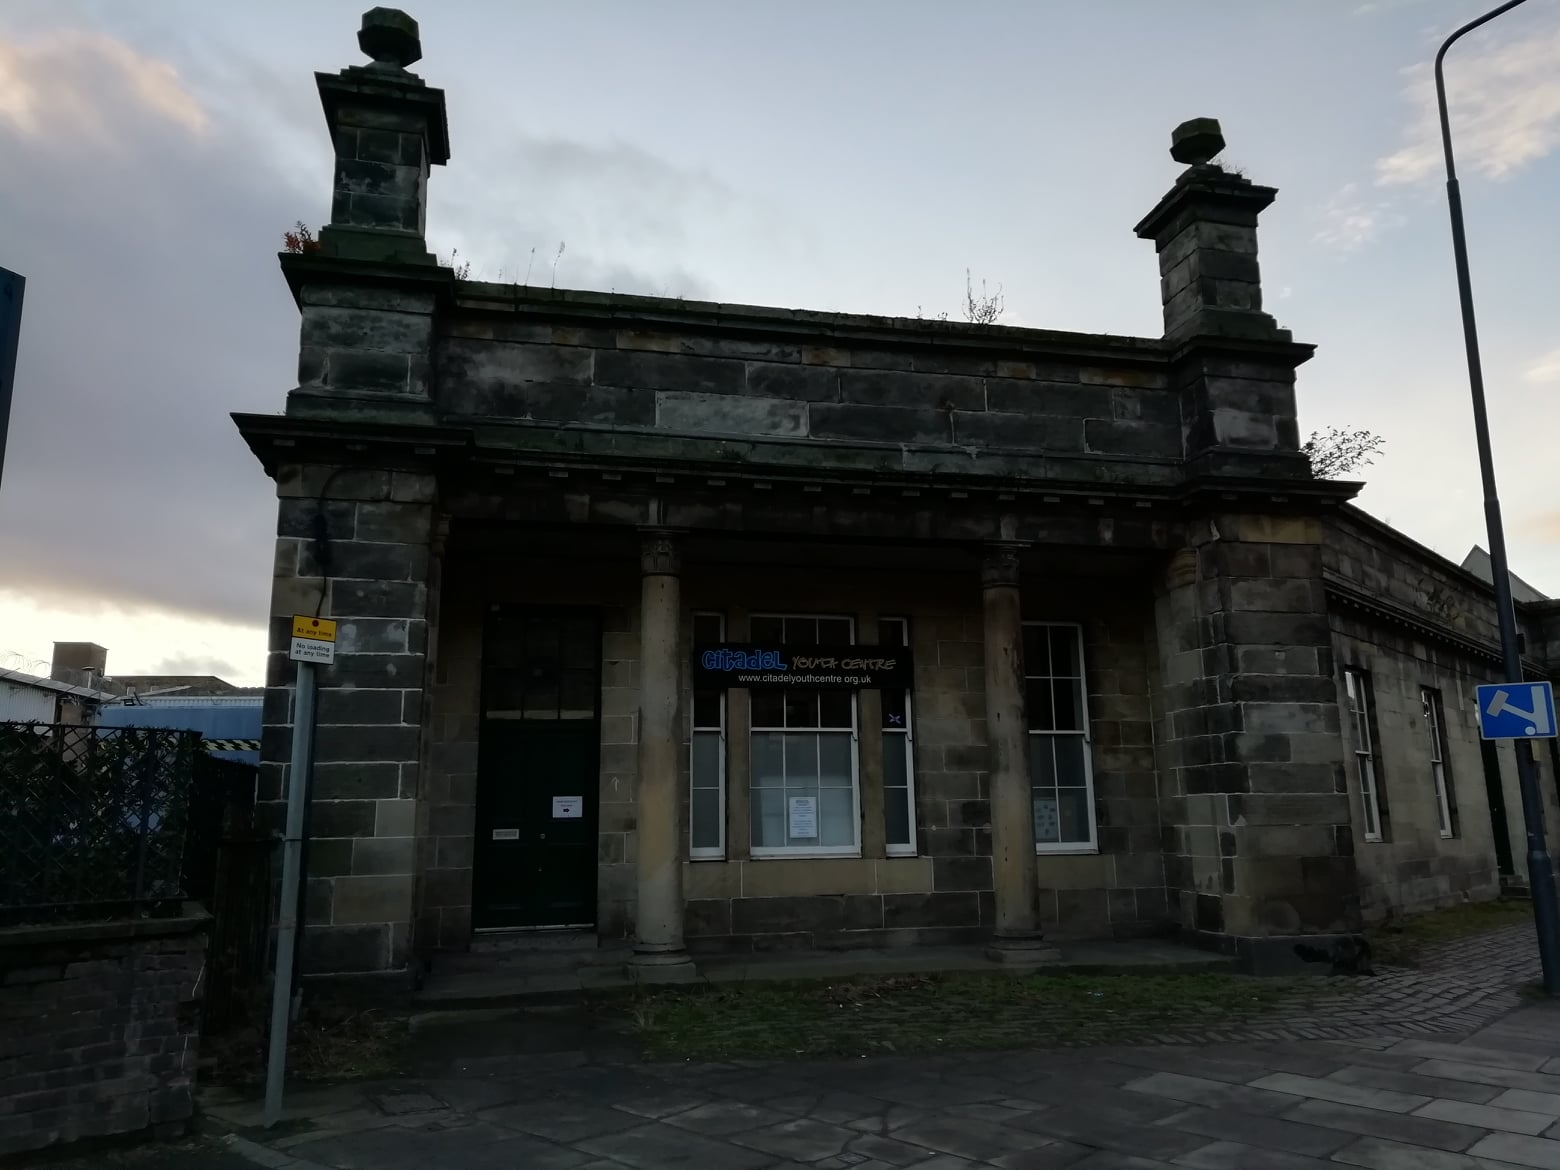 Citadel Railway Station, Commercial Street, Leith